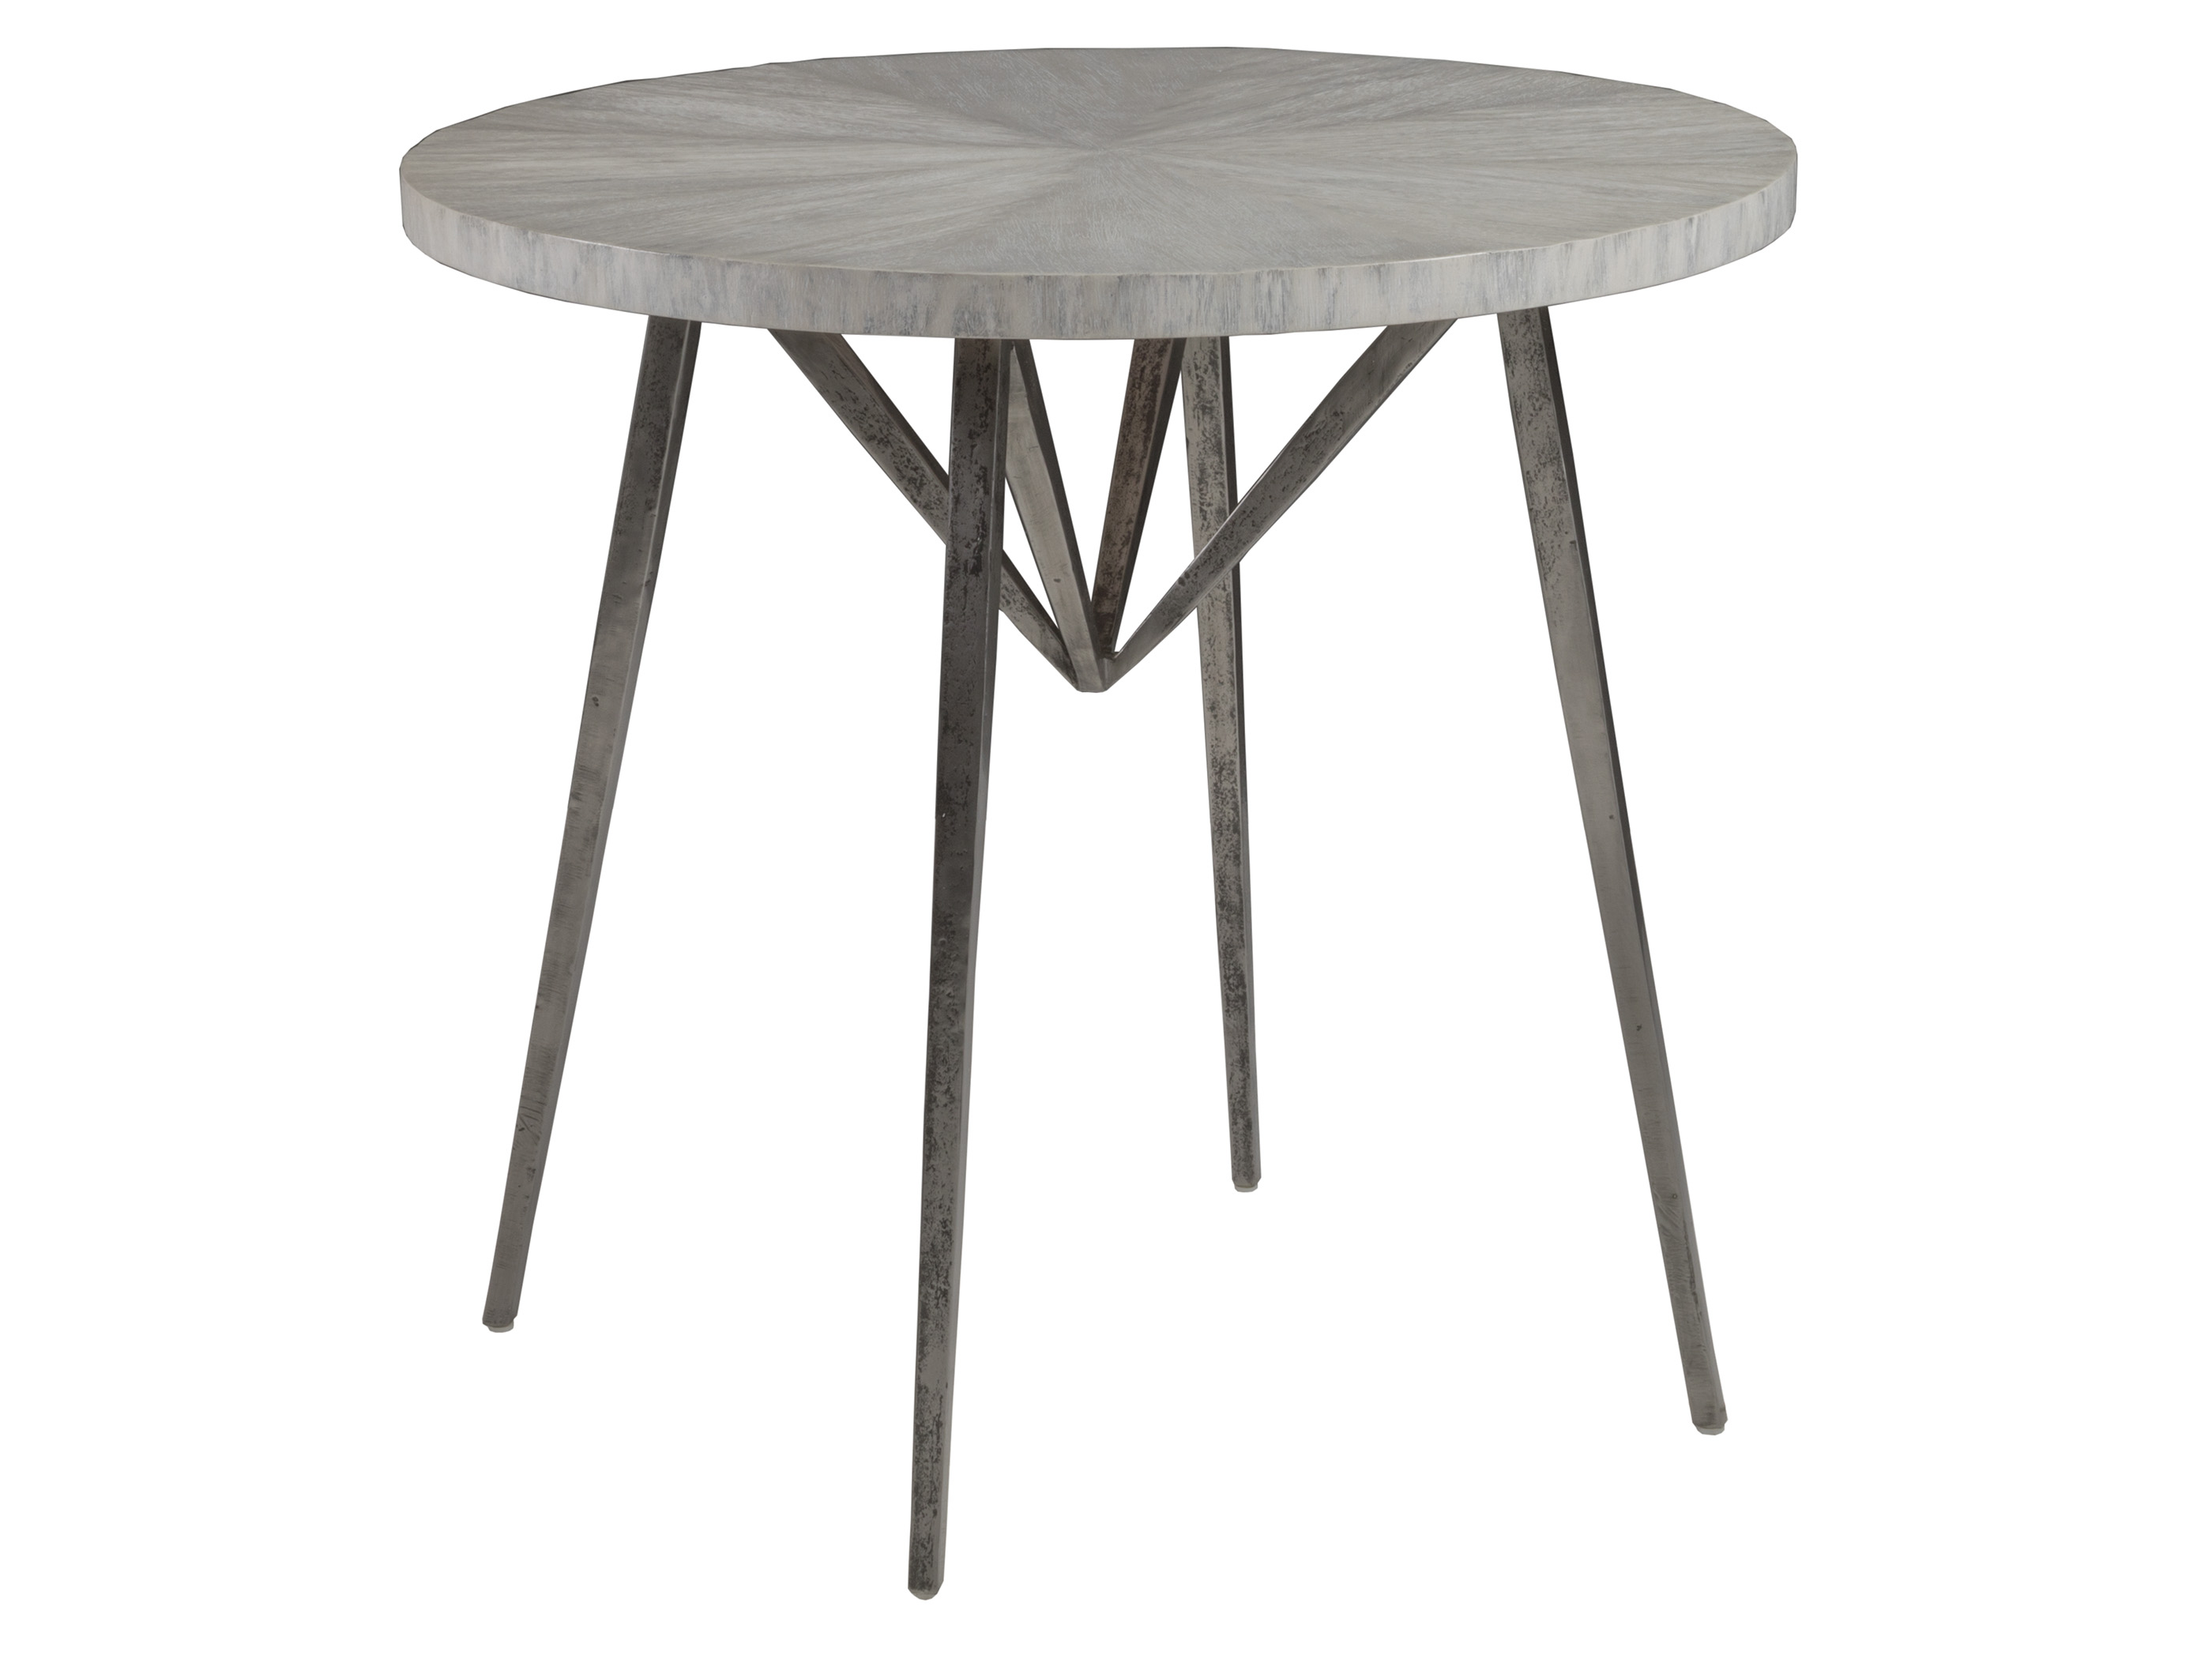 Alfie Round End Table by Artistica at Baer's Furniture